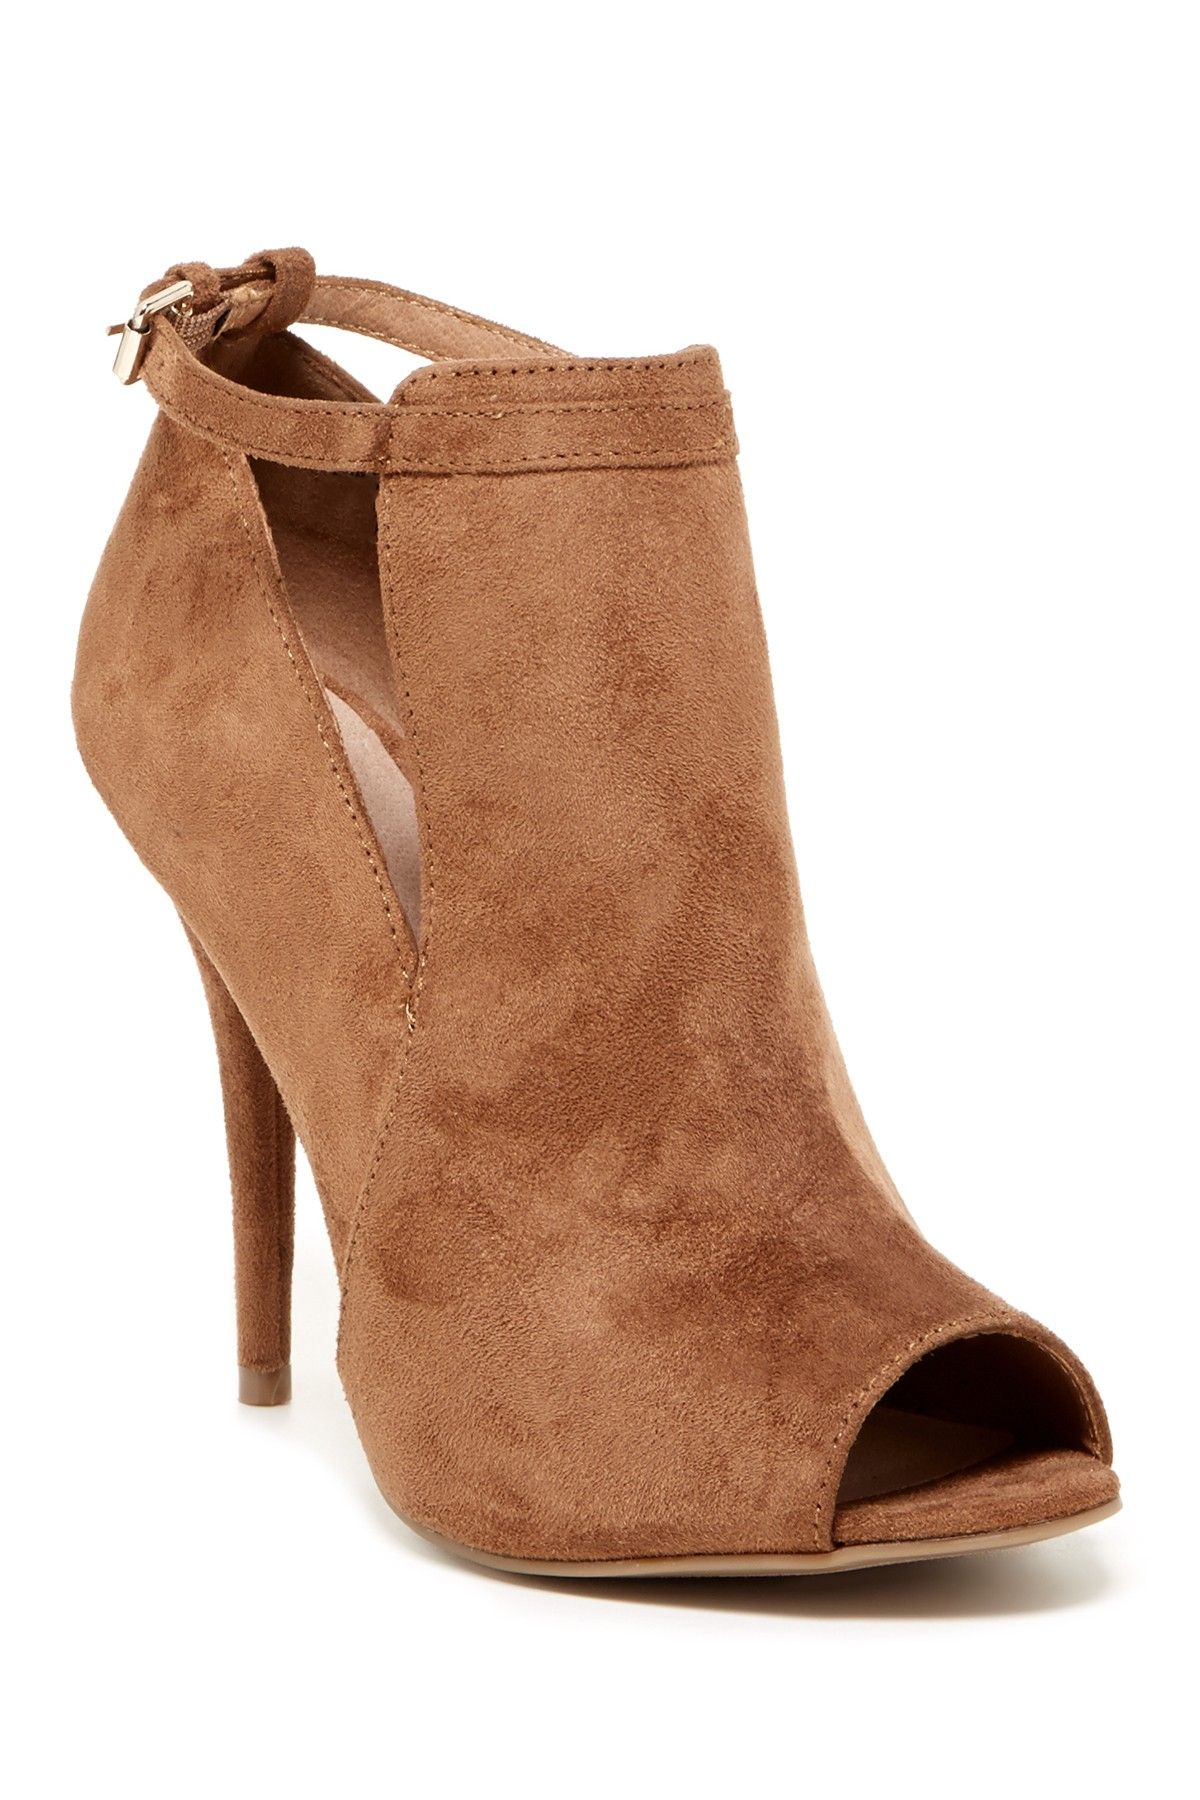 6b1436bc Dalula High Heeled Bootie | Fall fashion | Pinterest | Zapatos, Tacones y  Botín